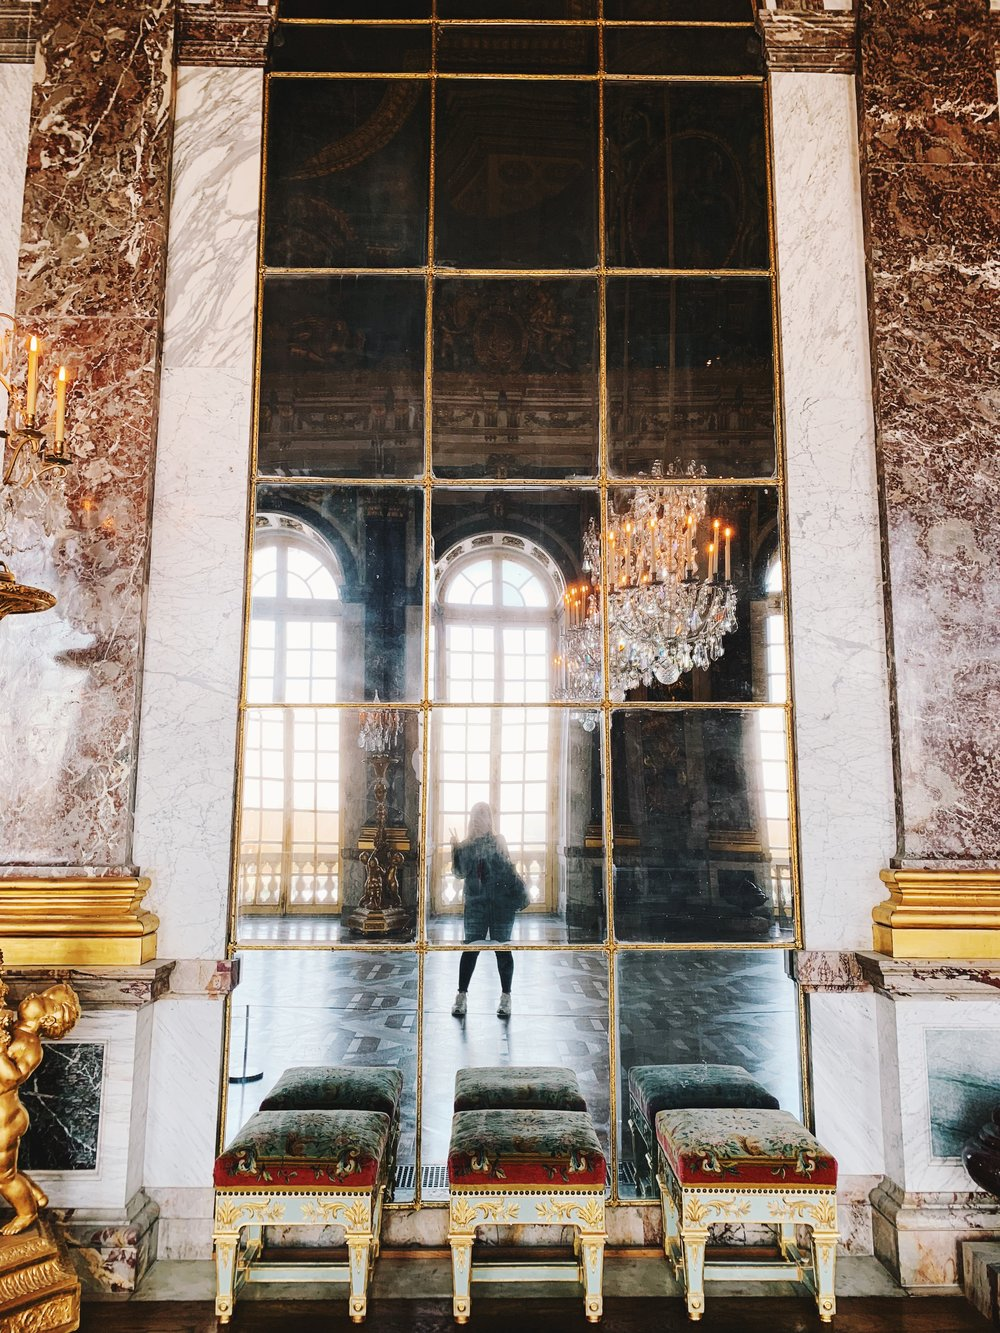 Selfie in the Hall of Mirrors.